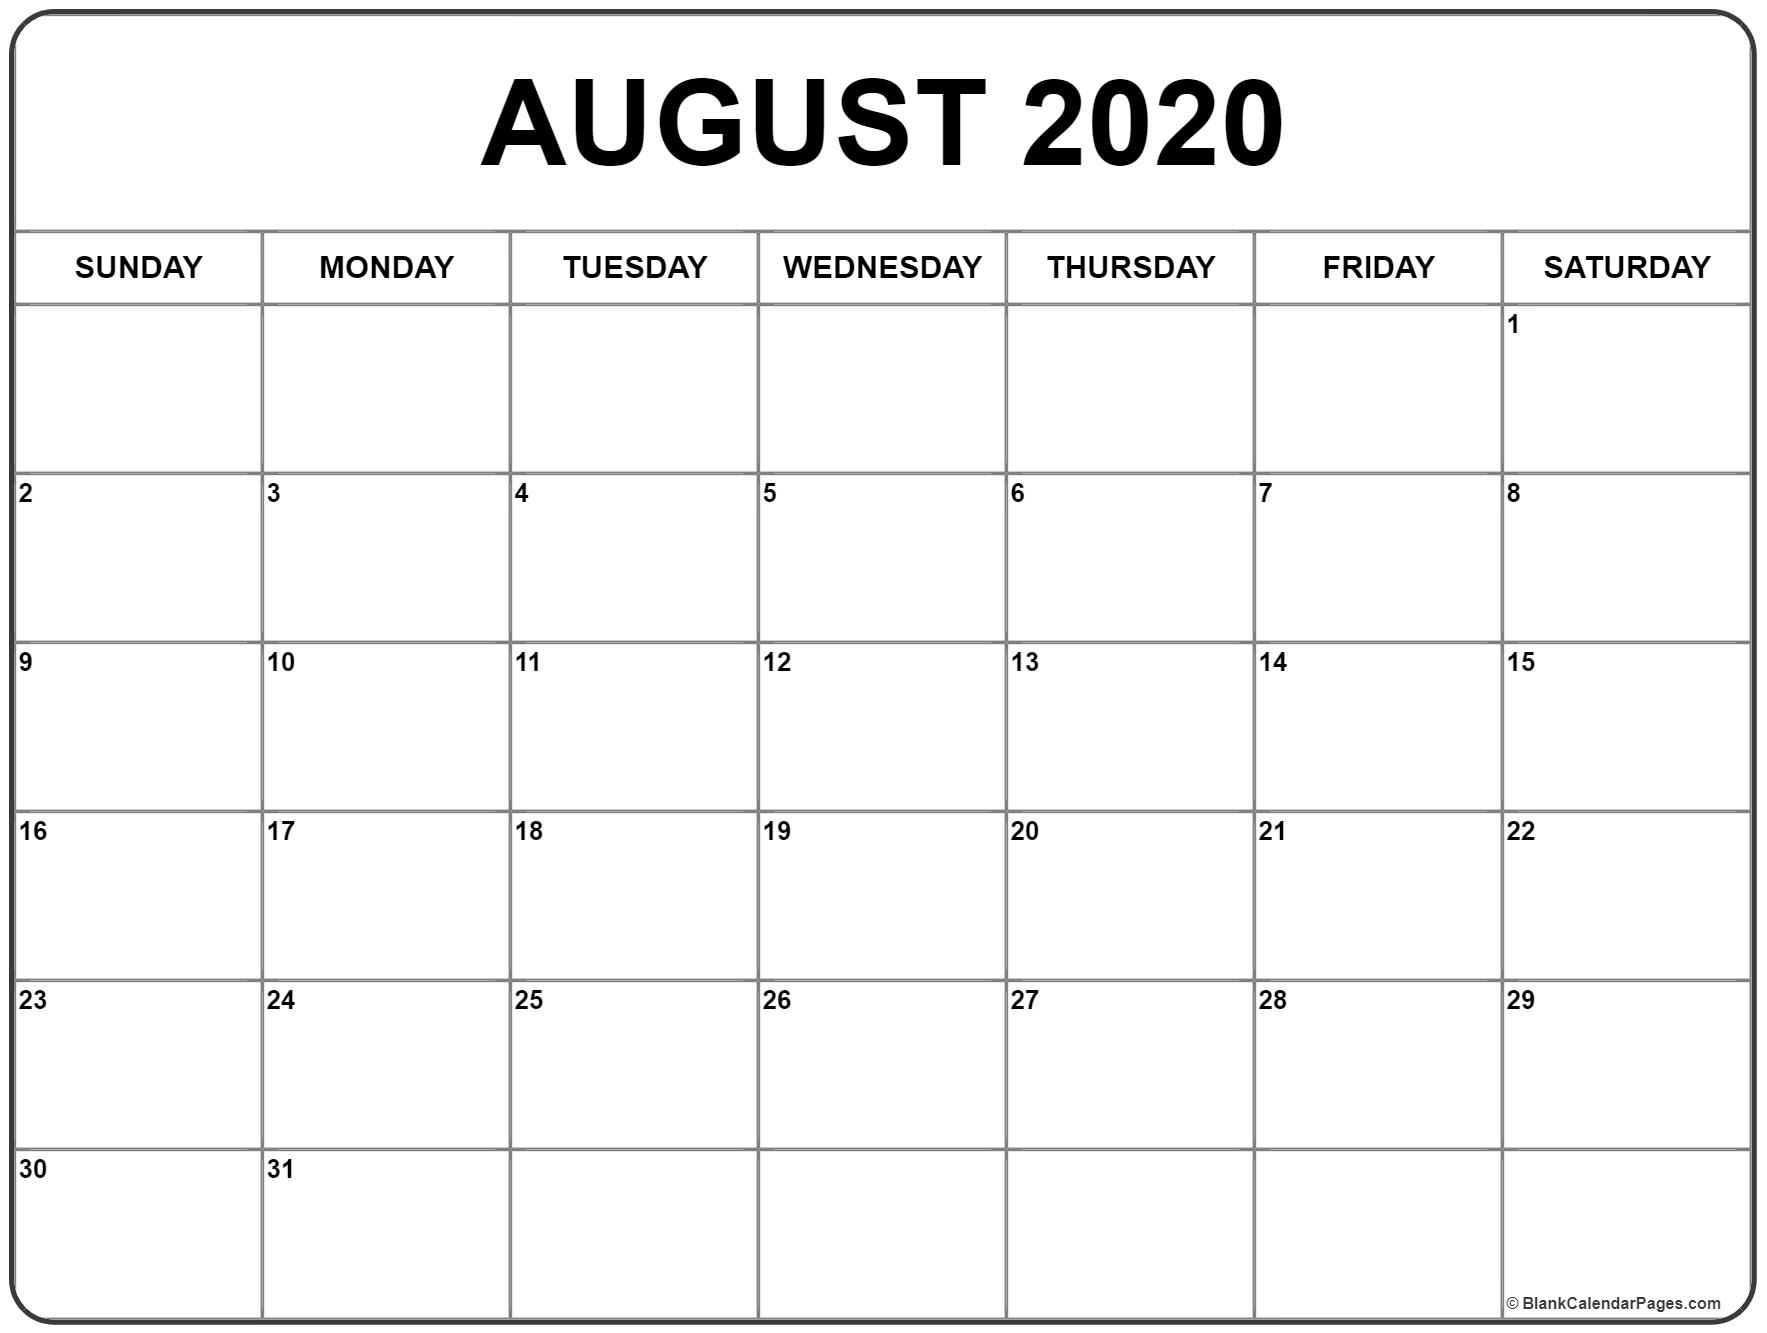 August 2020 Calendar | Free Printable Monthly Calendars intended for Large Print 2020 Calendar To Print Free